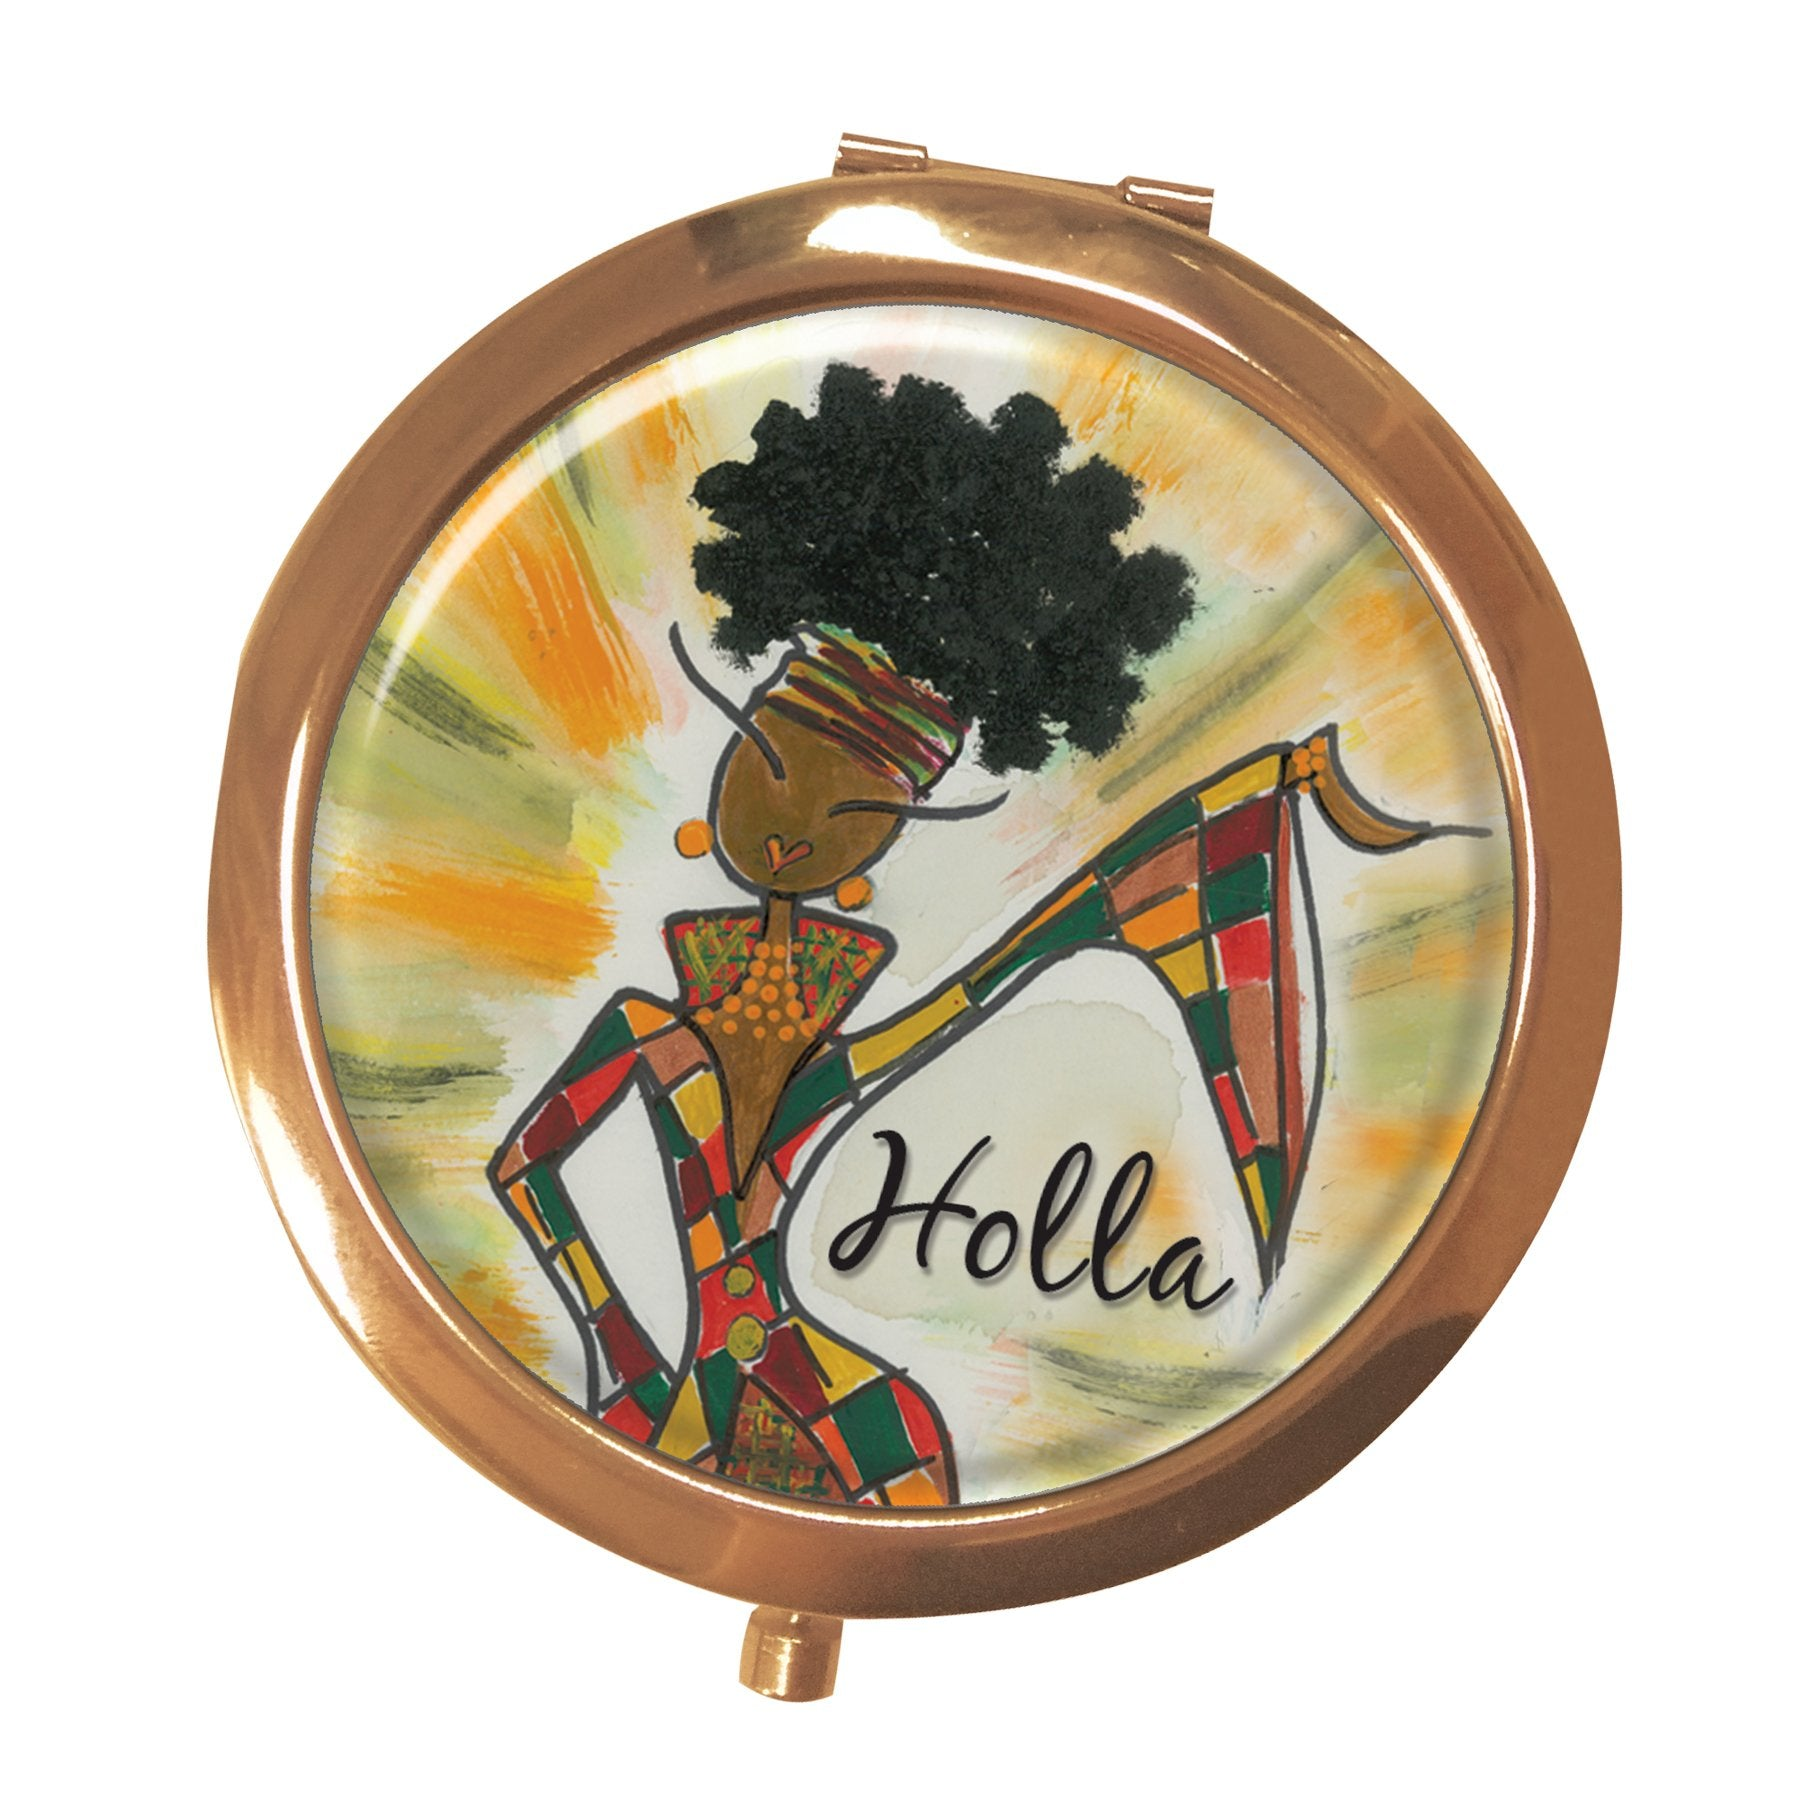 Holla: African American Pocket Mirror by Kiwi McDowell